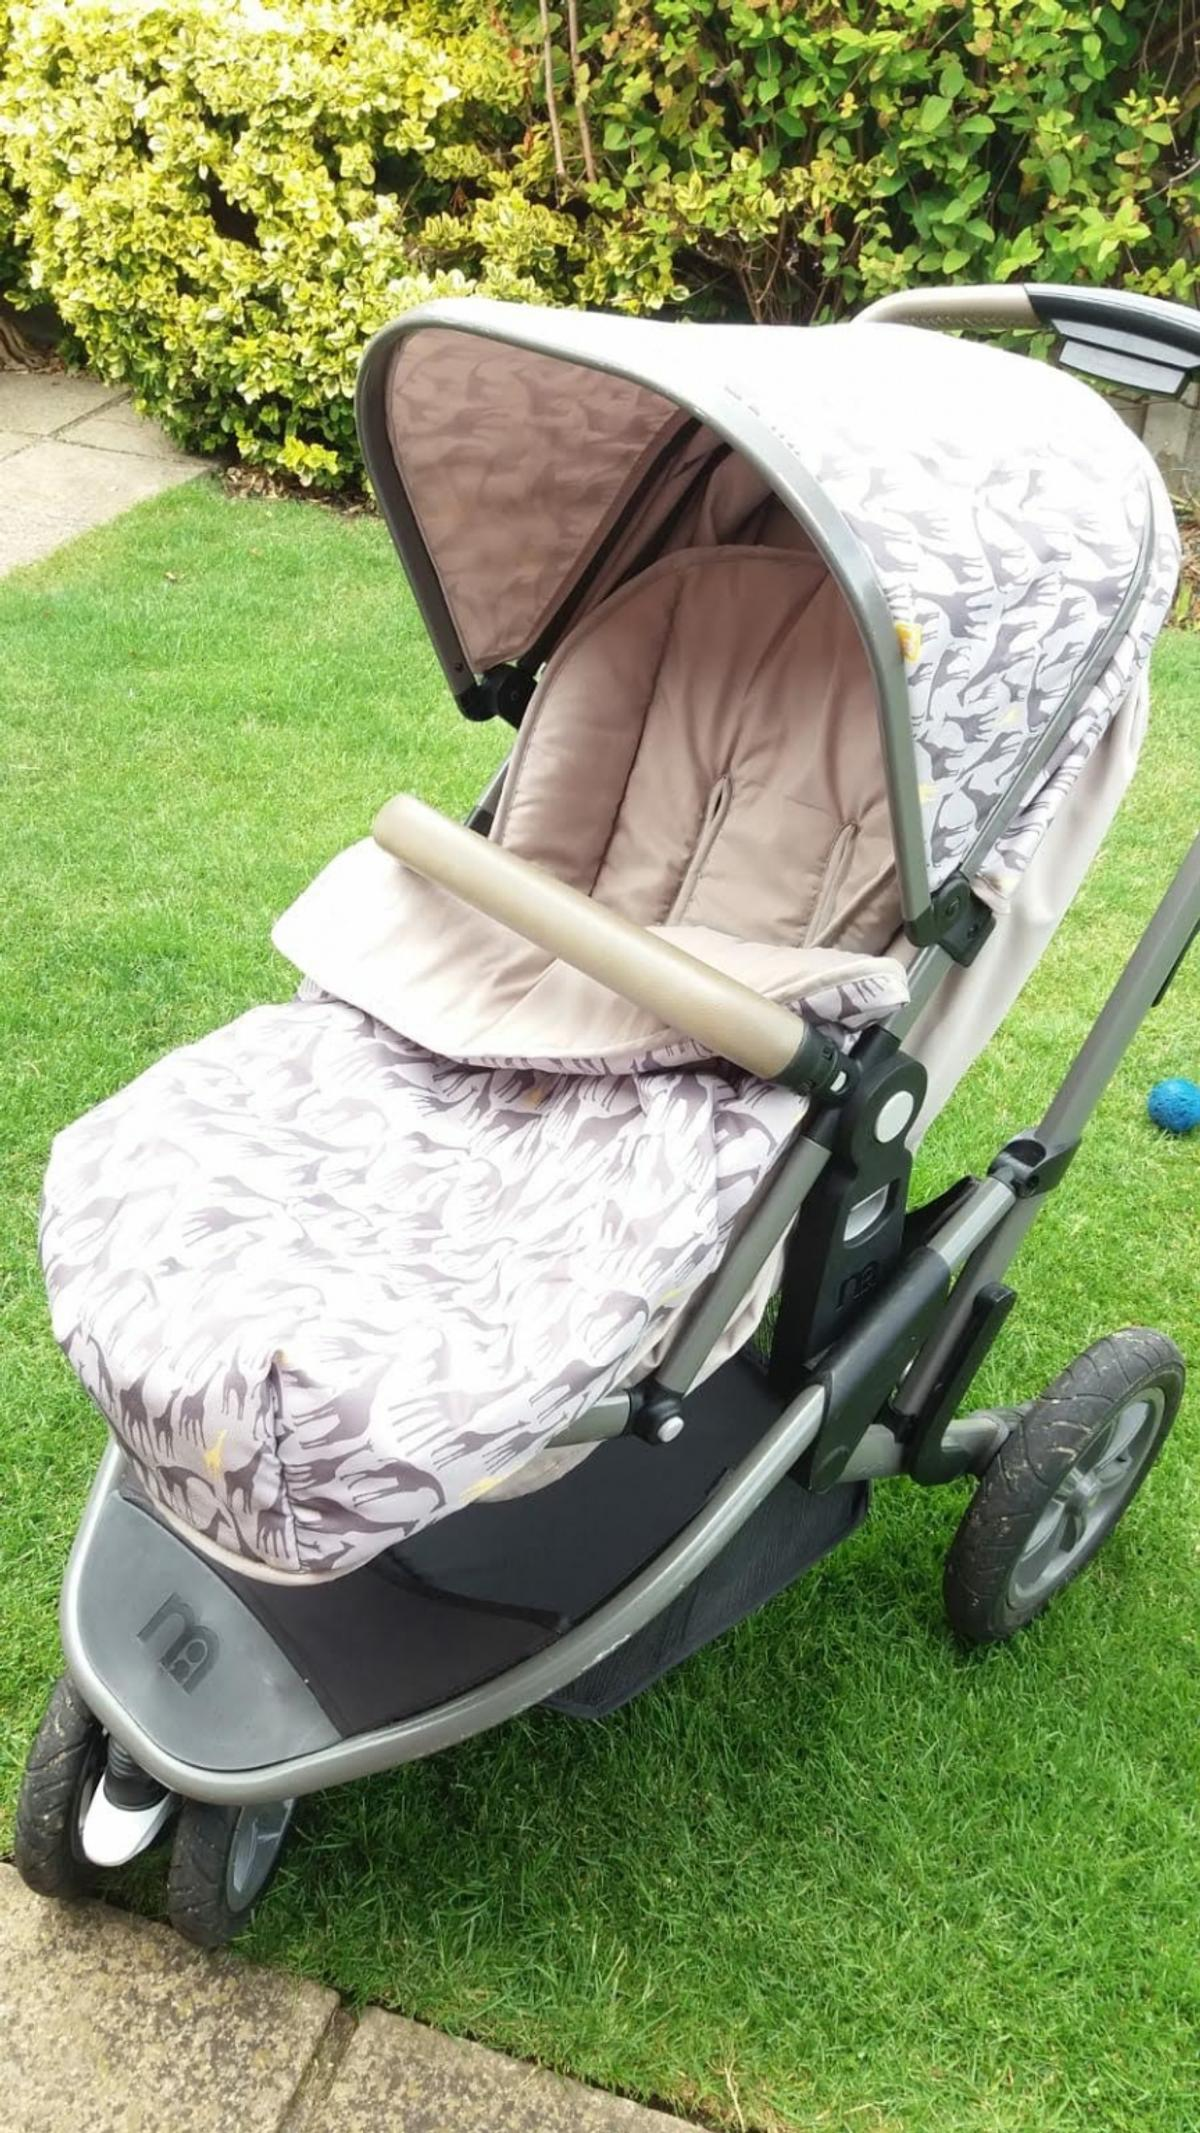 Travel system Versatile and easy to use In good condition